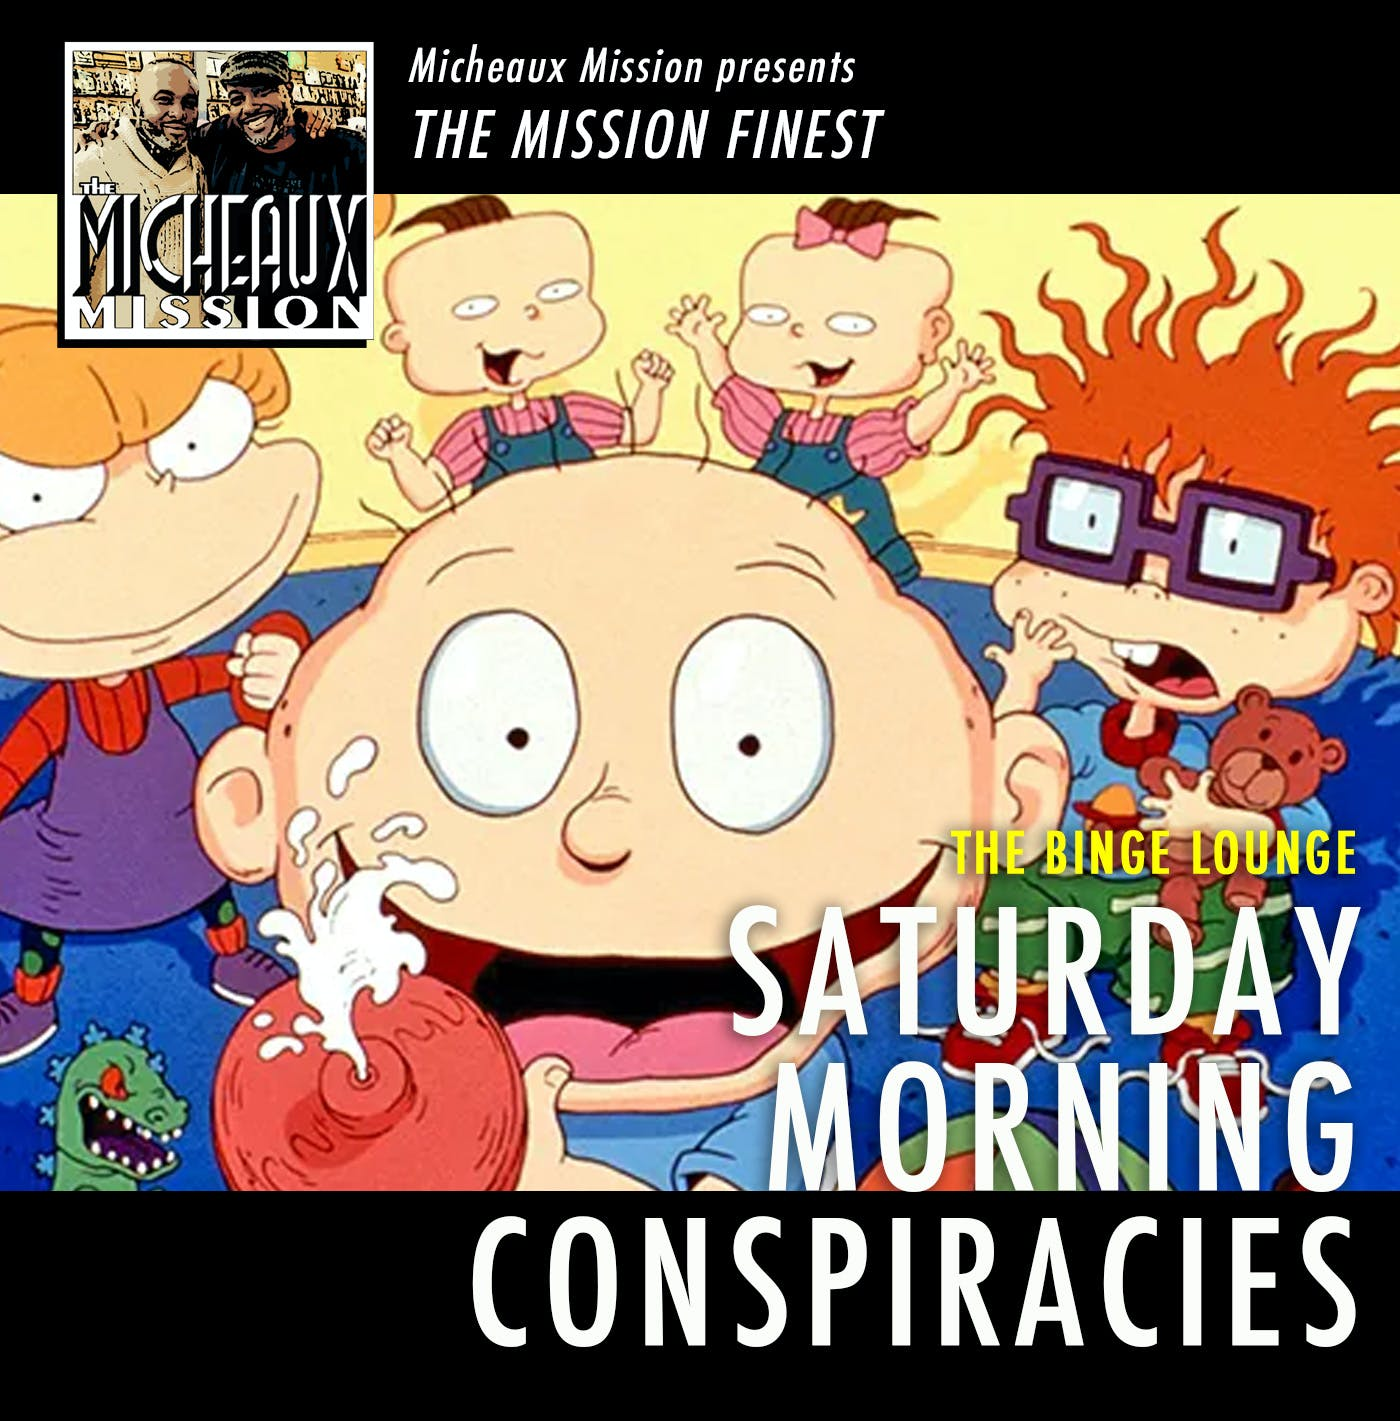 THE MISSION FINEST - Saturday Morning Conspiracies